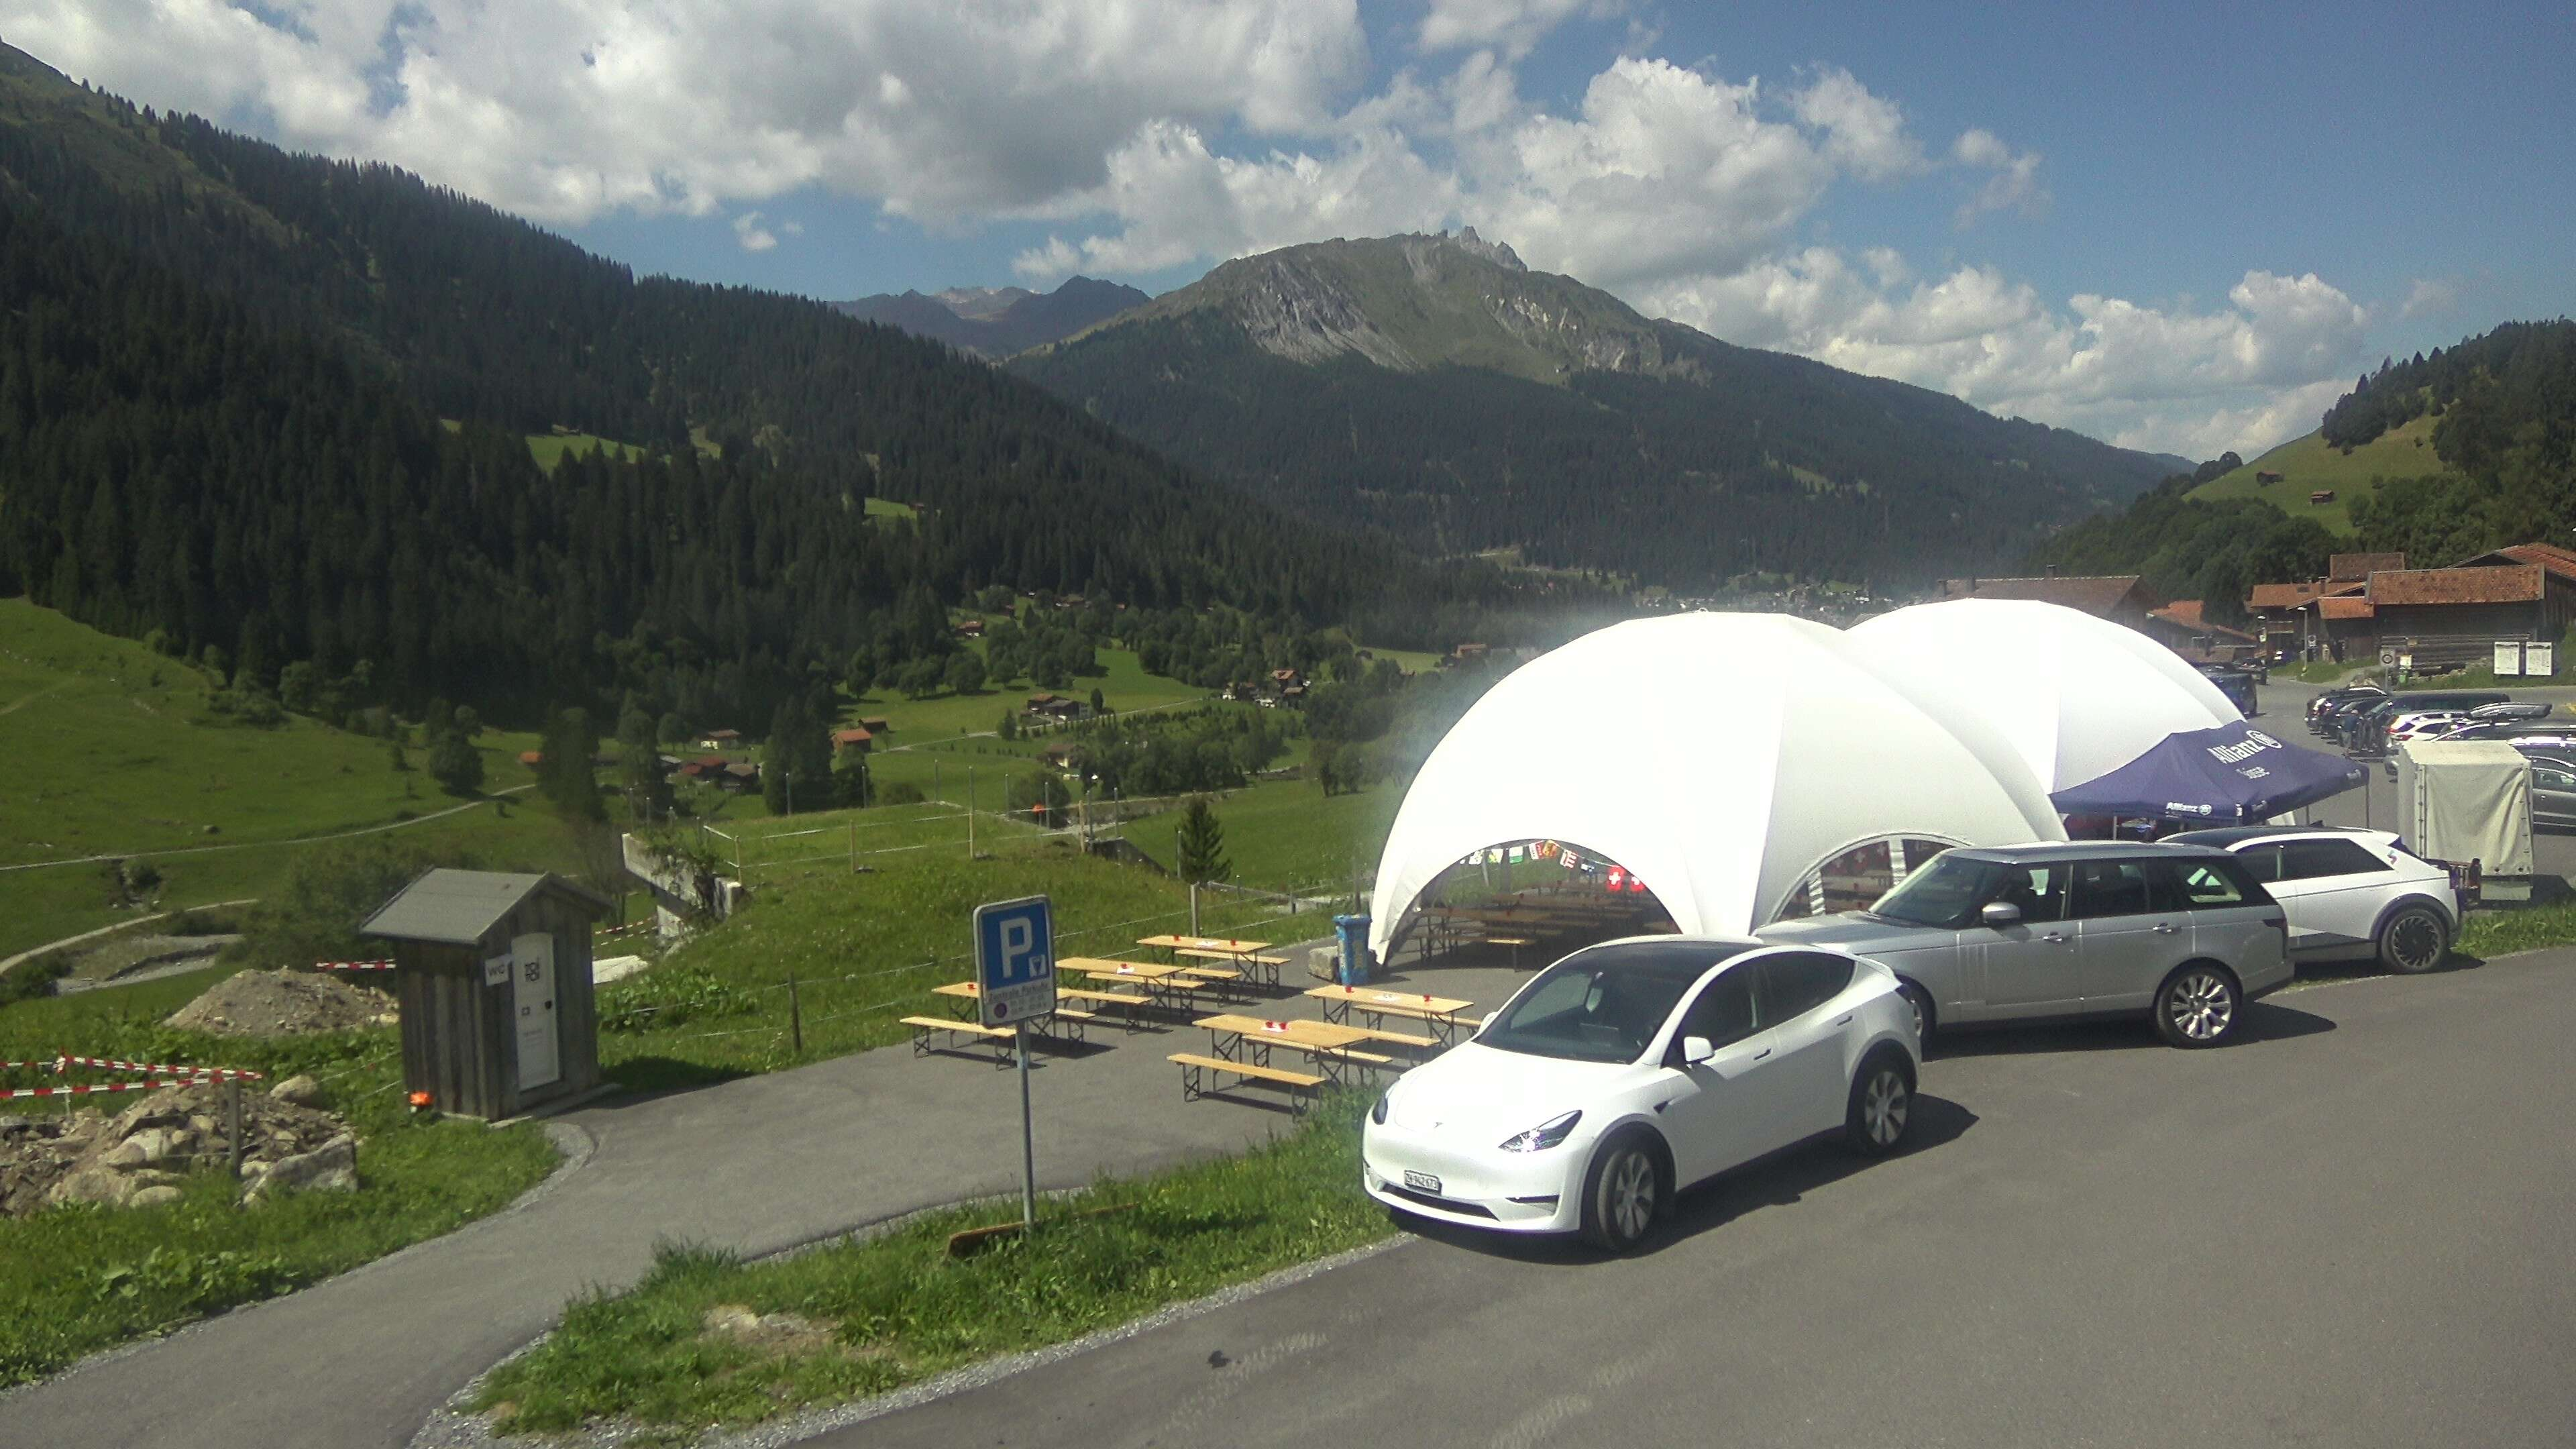 Klosters Monbiel Parking